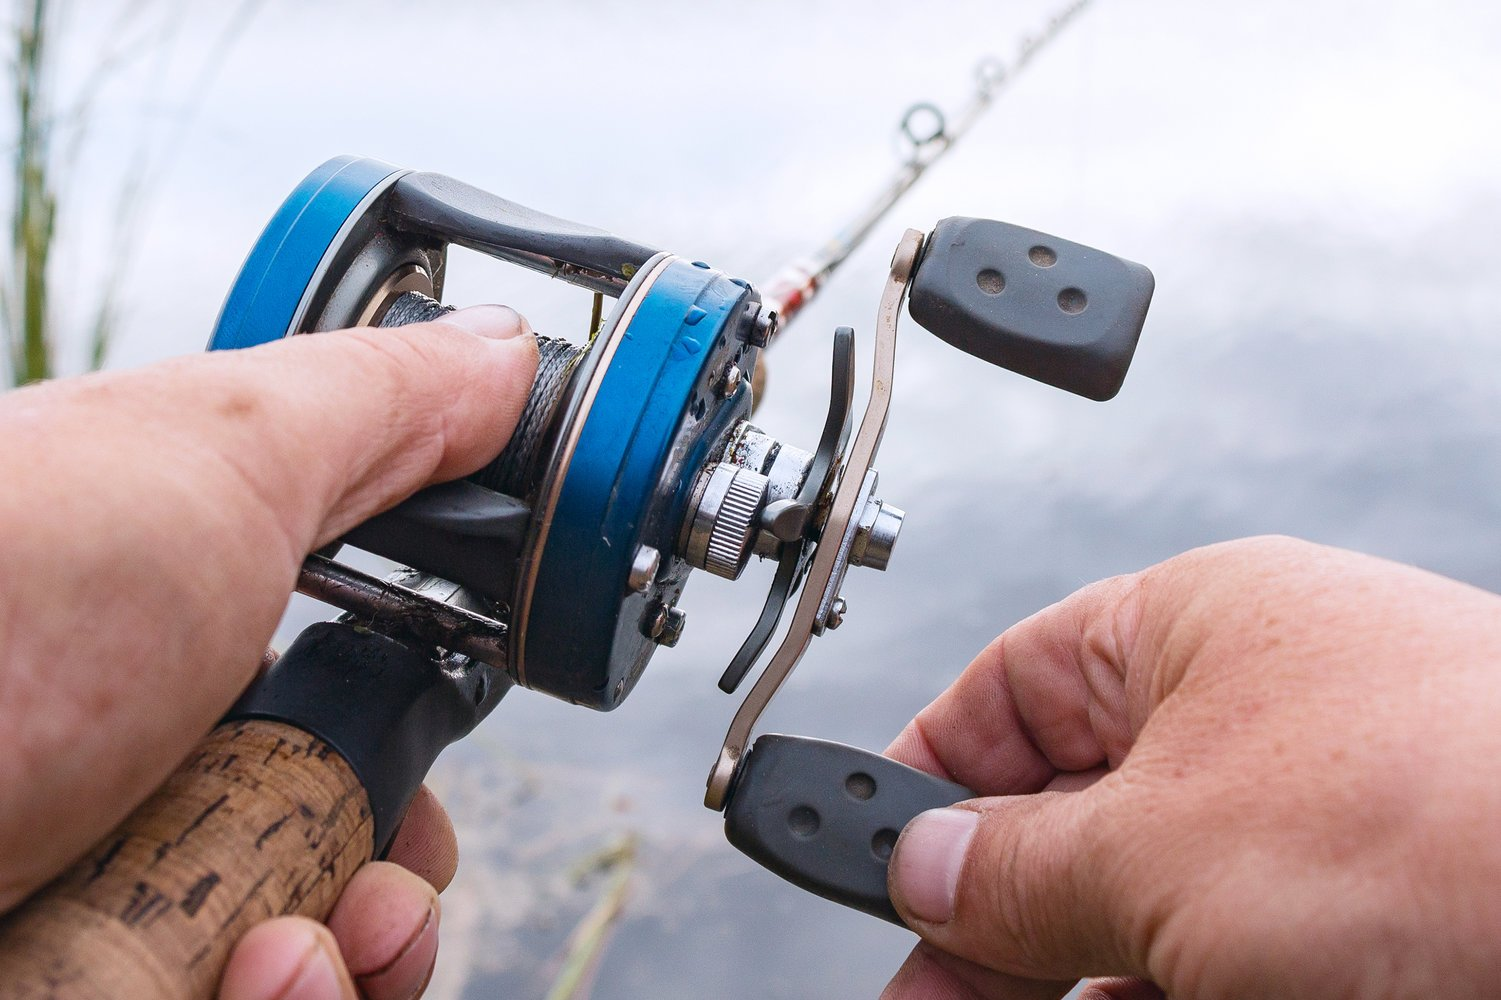 a closeup of a baitcaster, the most advanced type of fishing reel